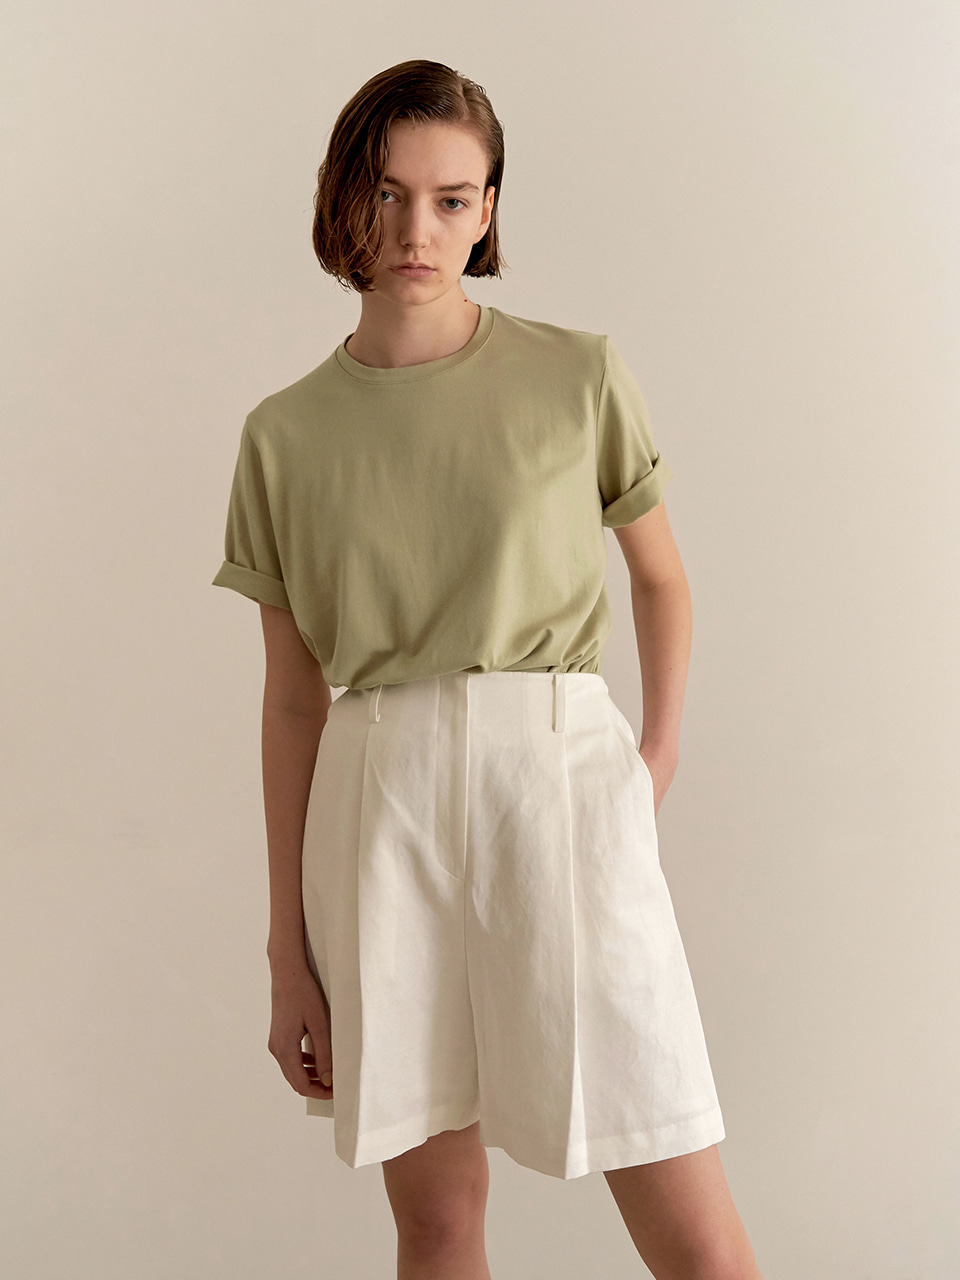 [최실장PICK][7/2순차배송] Daily slit T-shirt - Mint